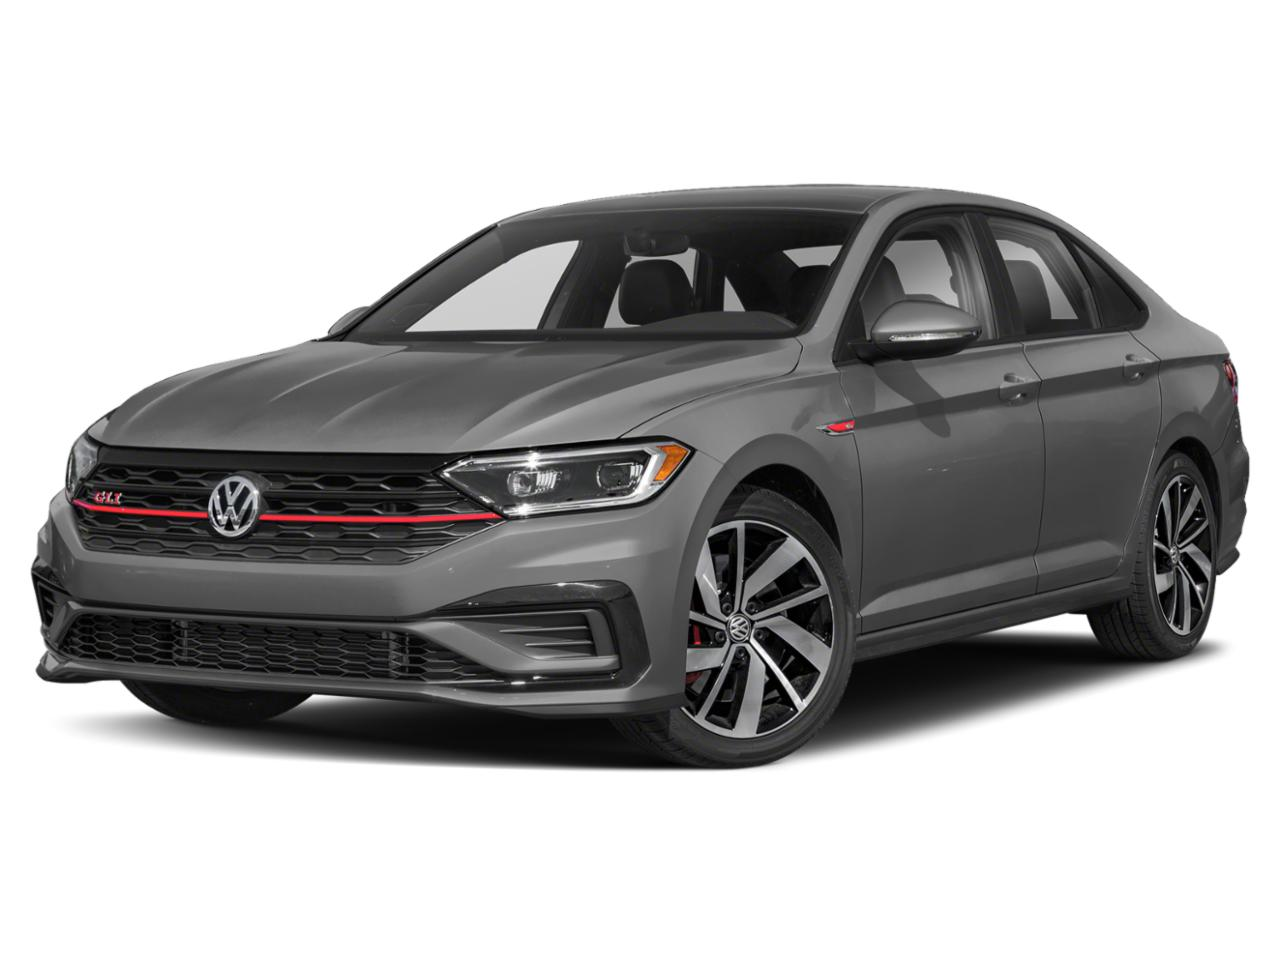 2020 Volkswagen Jetta GLI Vehicle Photo in Appleton, WI 54913